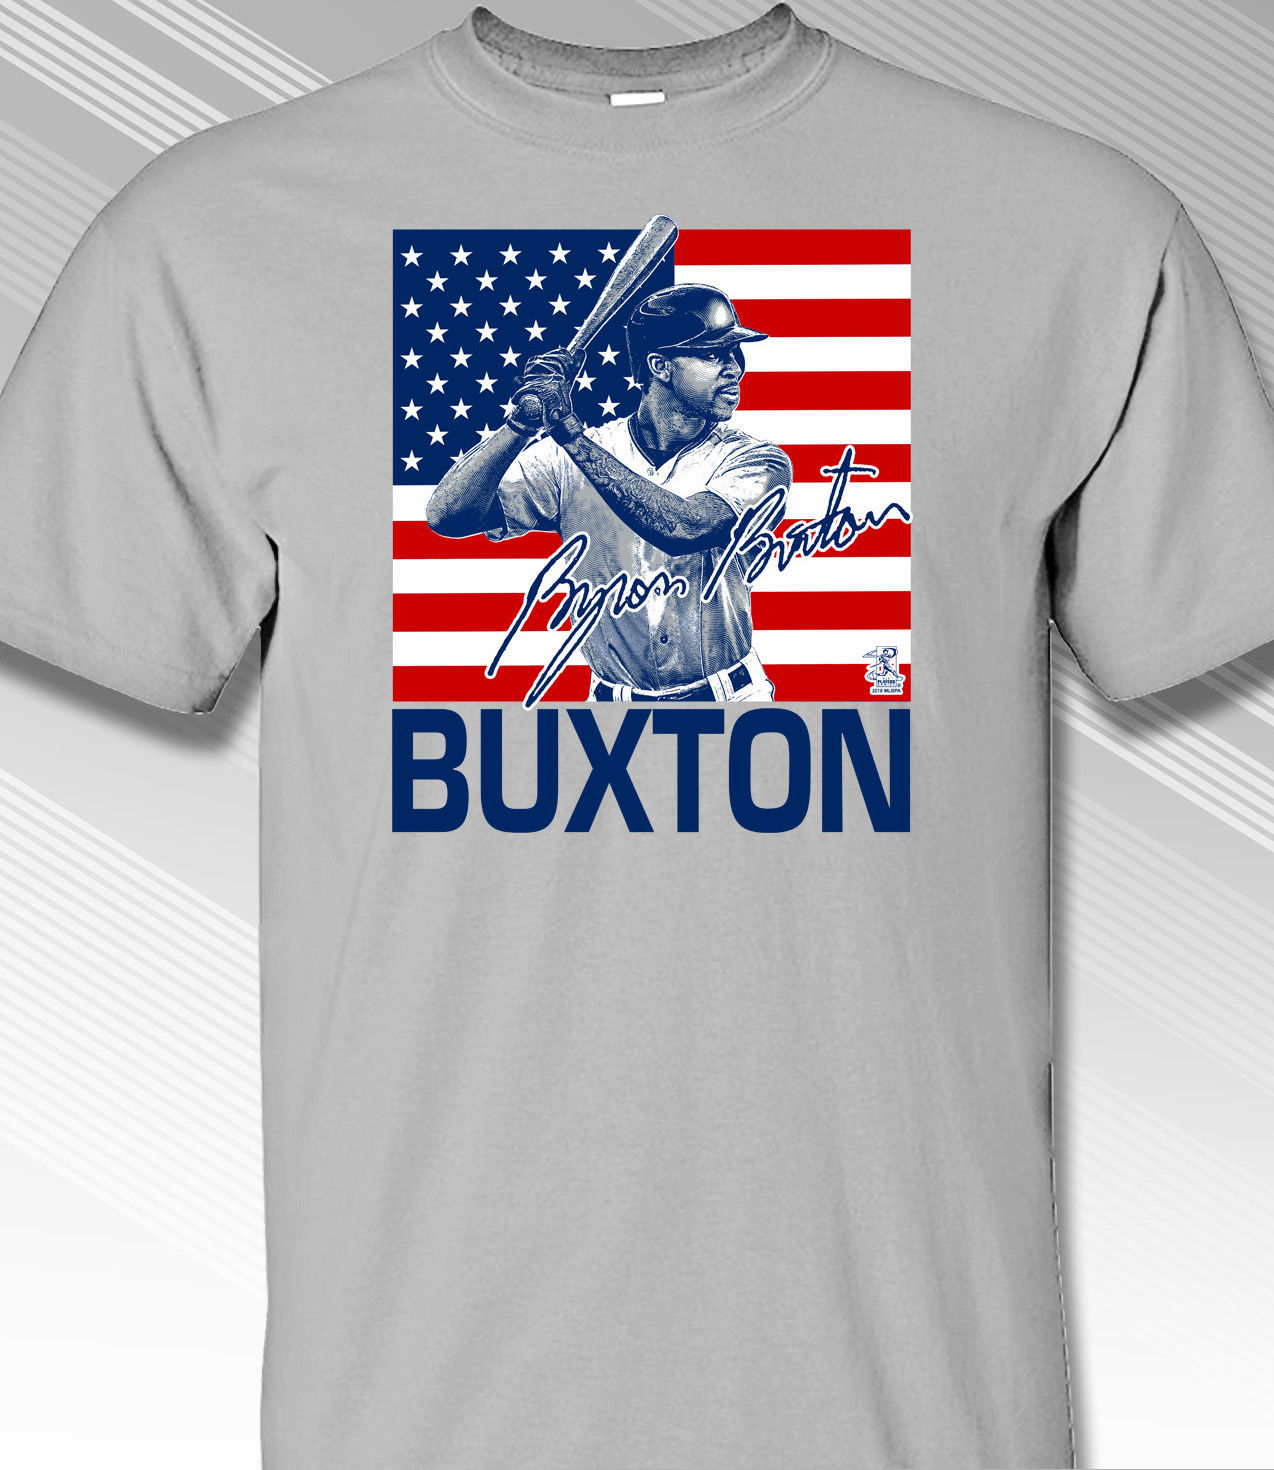 Byron Buxton USA Flag T-Shirt<br>Choose Your Color<br>Short or Long Sleeve<br>Youth Med to Adult 4X